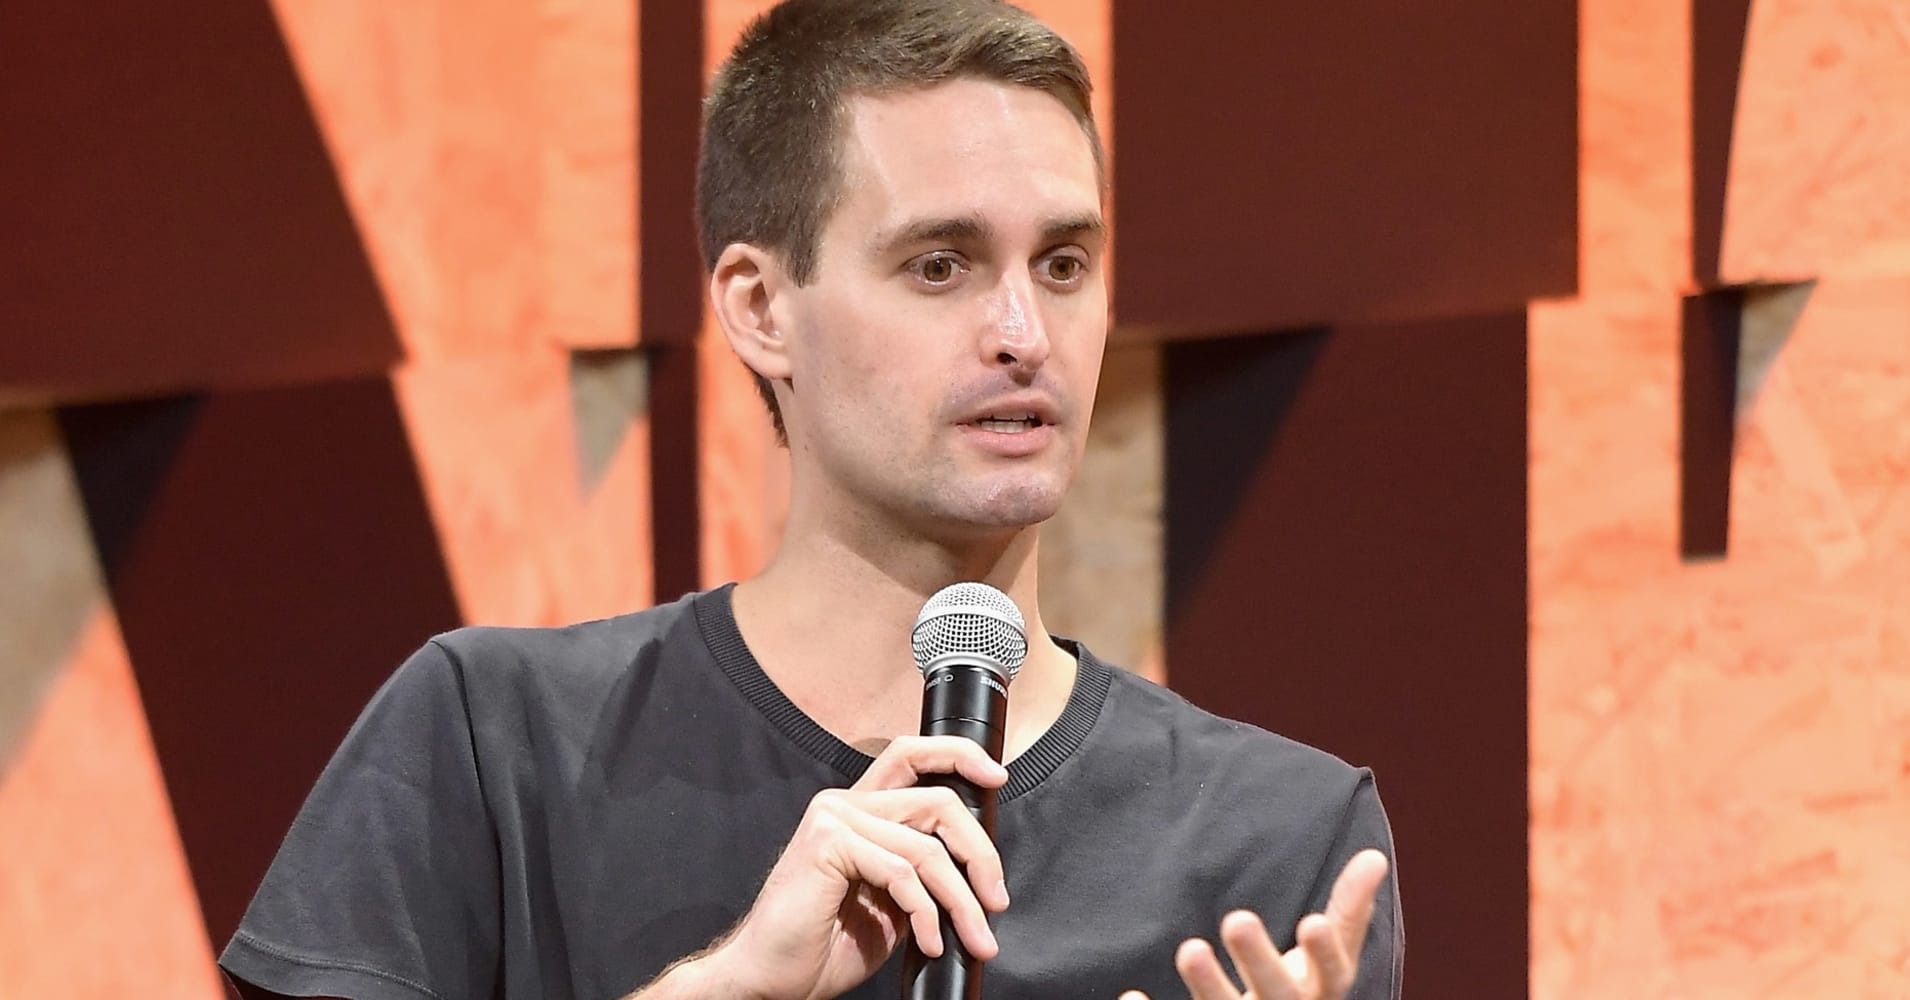 Snap's improved quarter can't hide 'a deeper, way bigger issue'